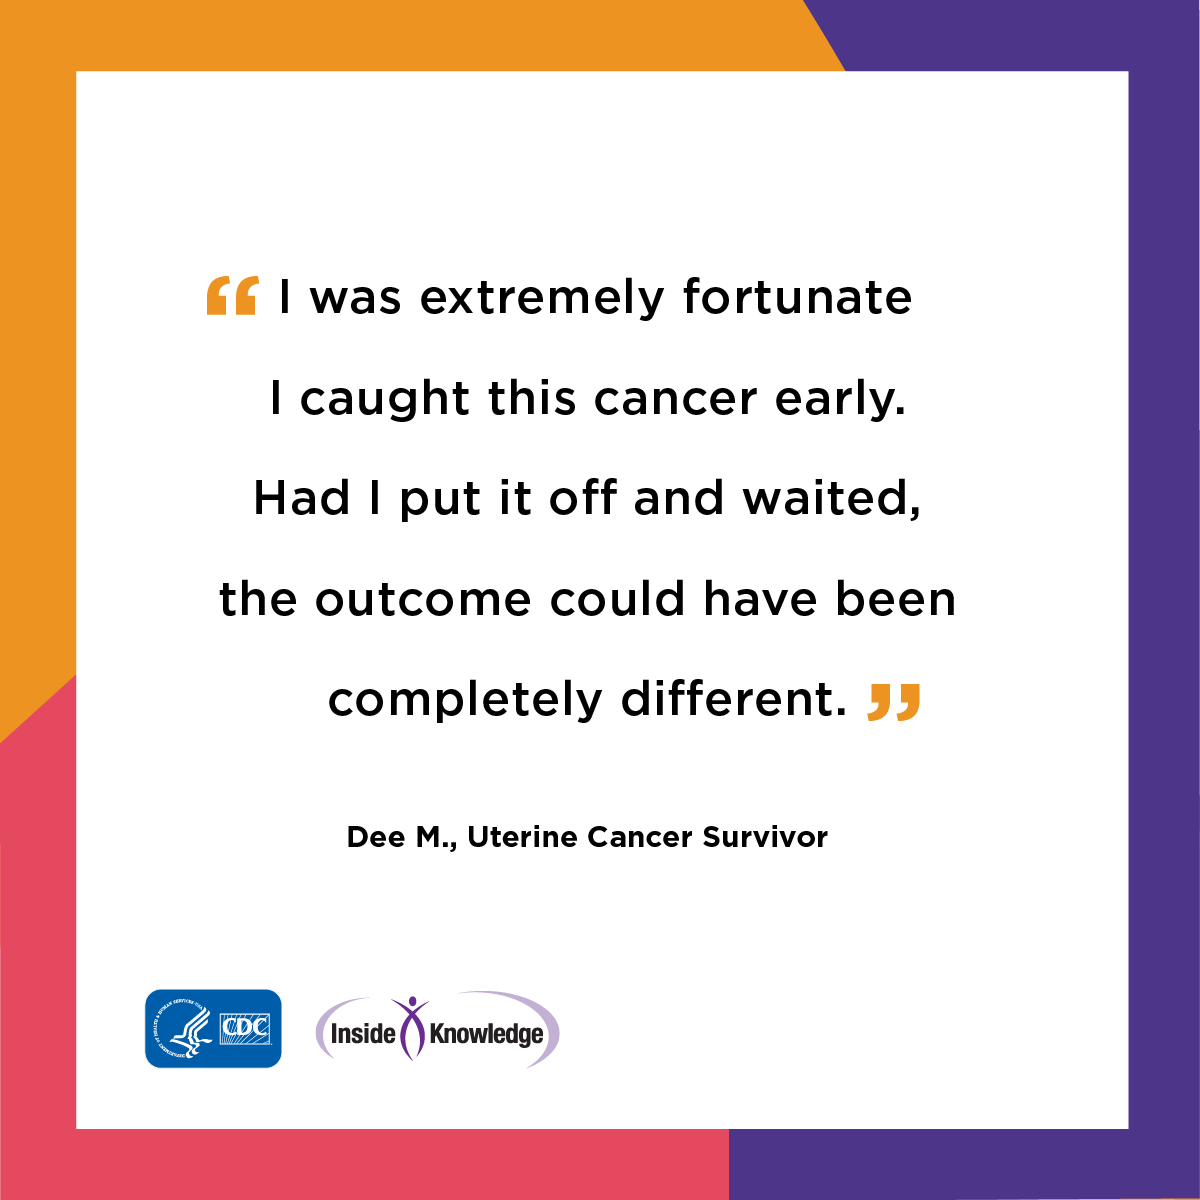 I was extremely fortunate I caught this cancer early. Had I put it off and waited, the outcome could have been completely different., Dee M., Uterine Cancer Survivor